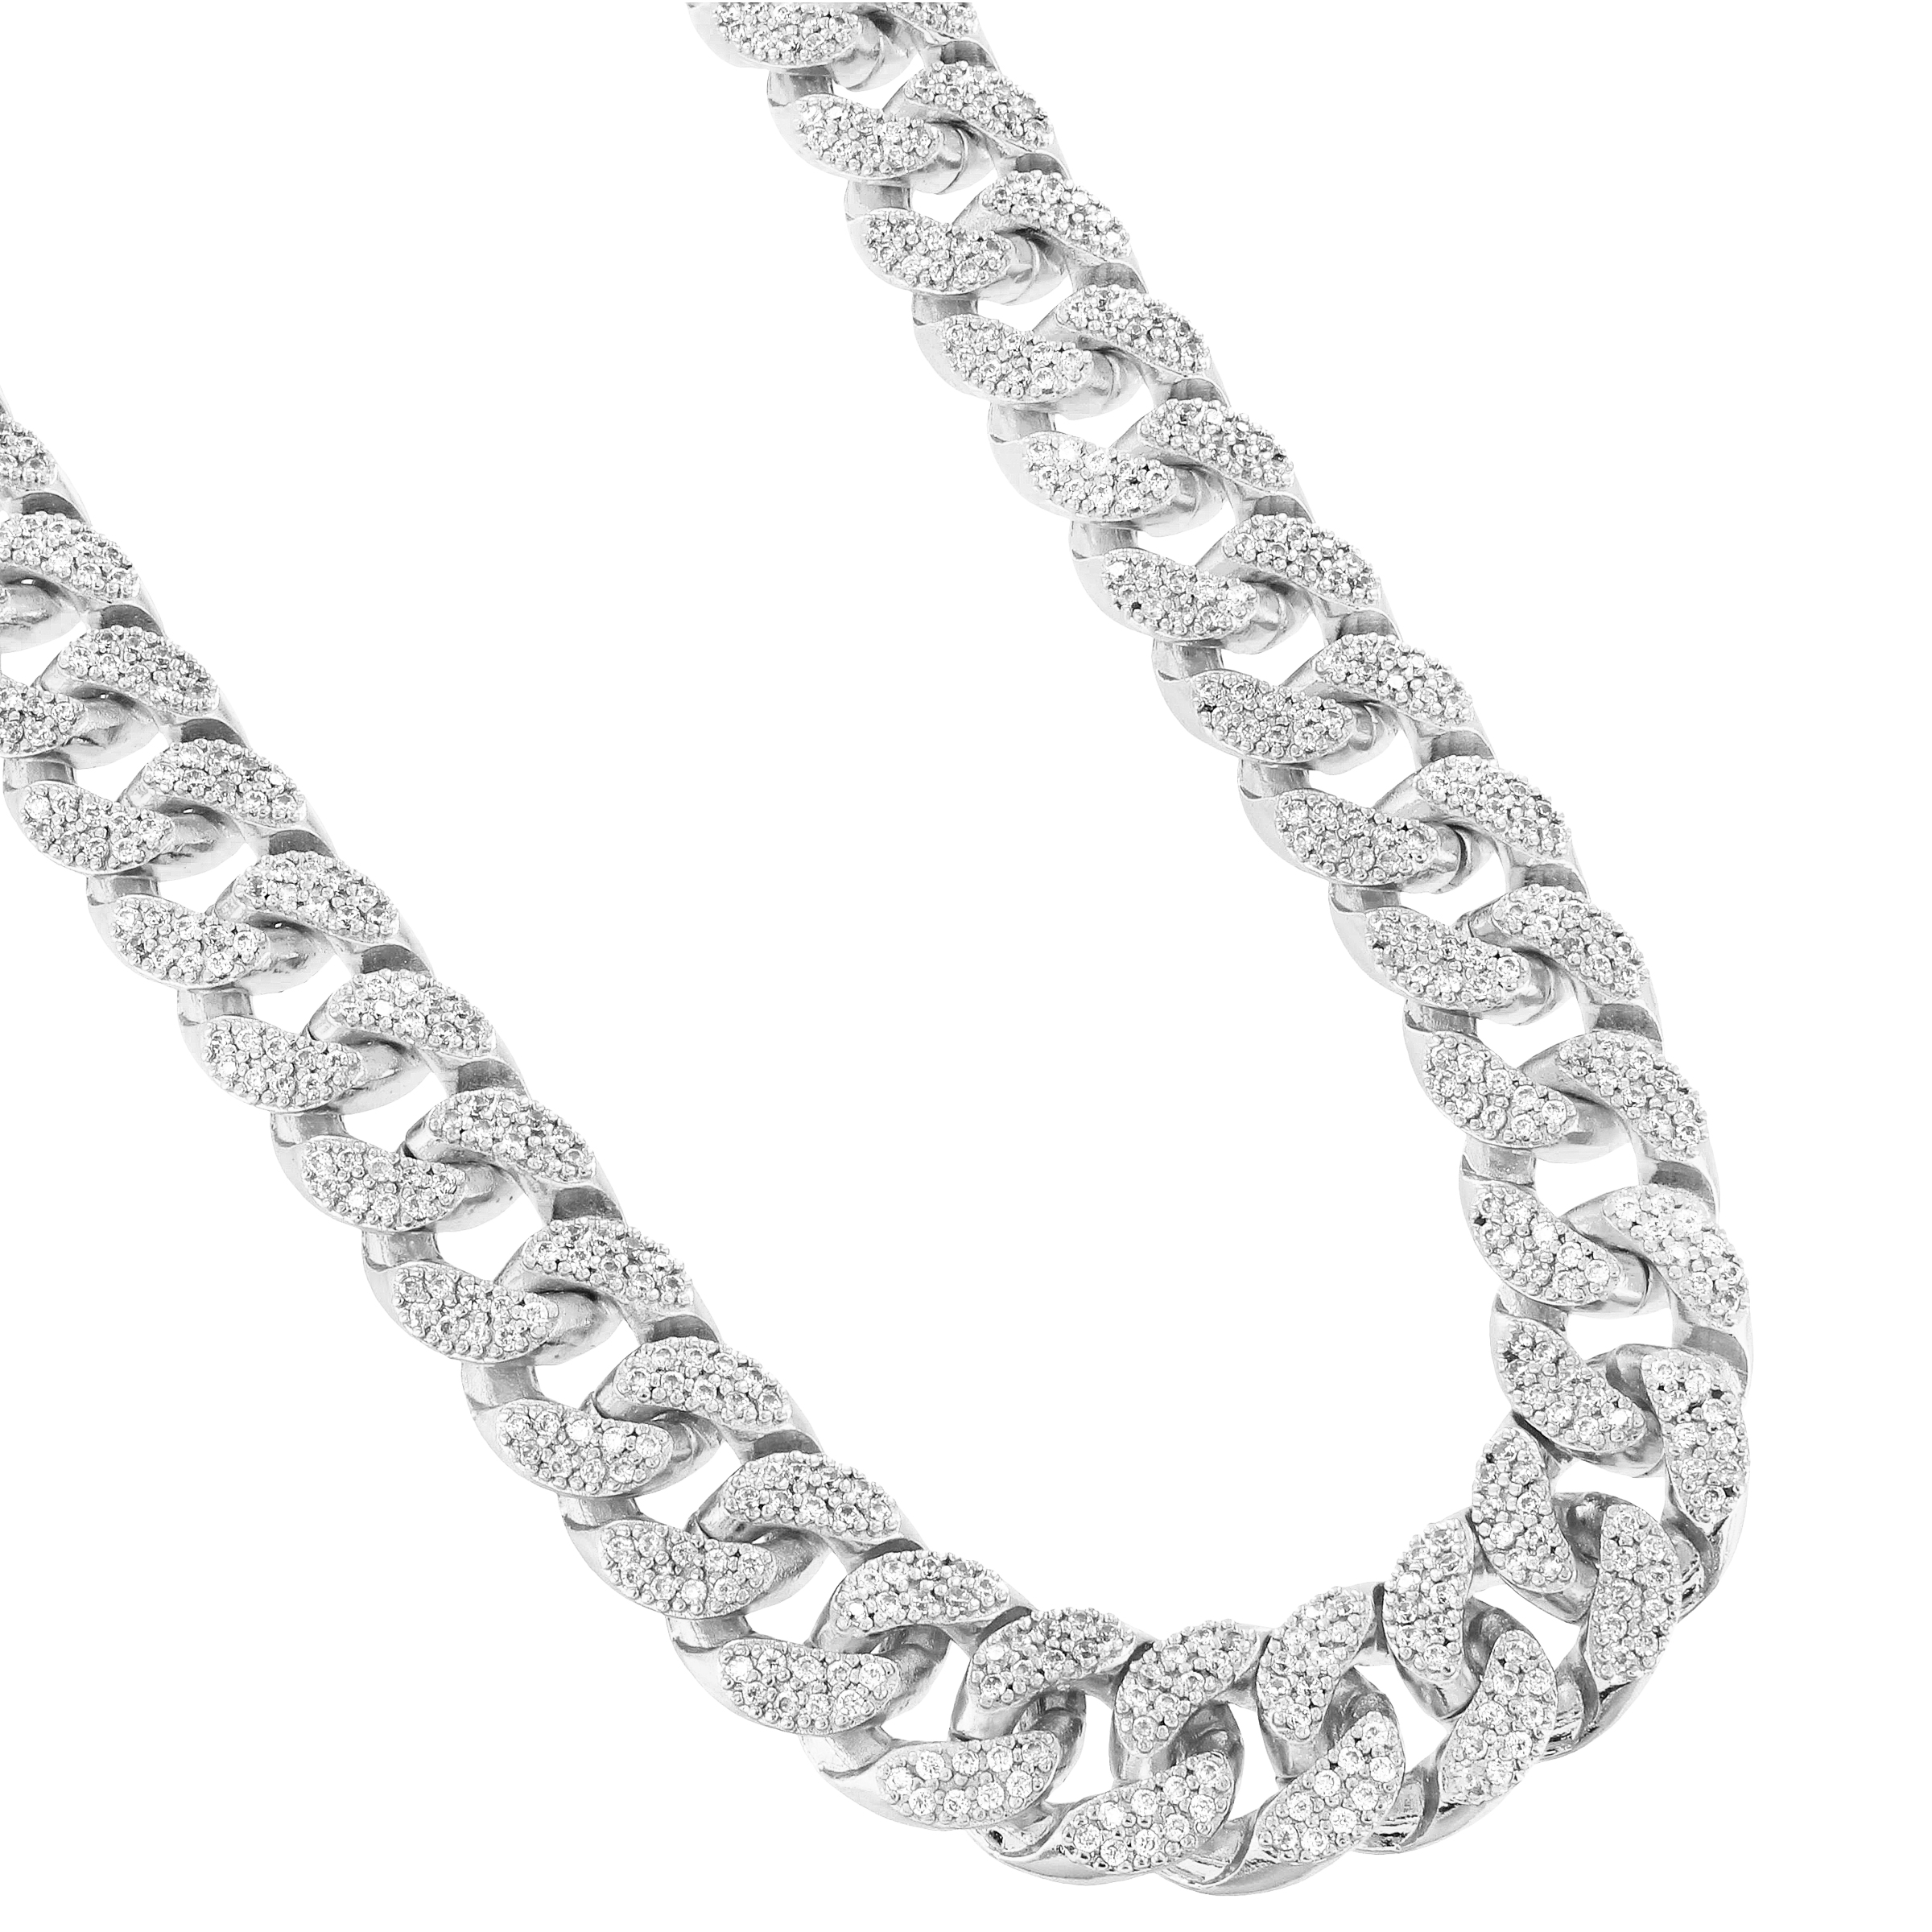 Miami Cuban Link 18 INCH CHAIN 15MM Necklace For Men Iced Out Lab Created Cubic Zirconias Silver Tone Heavy by